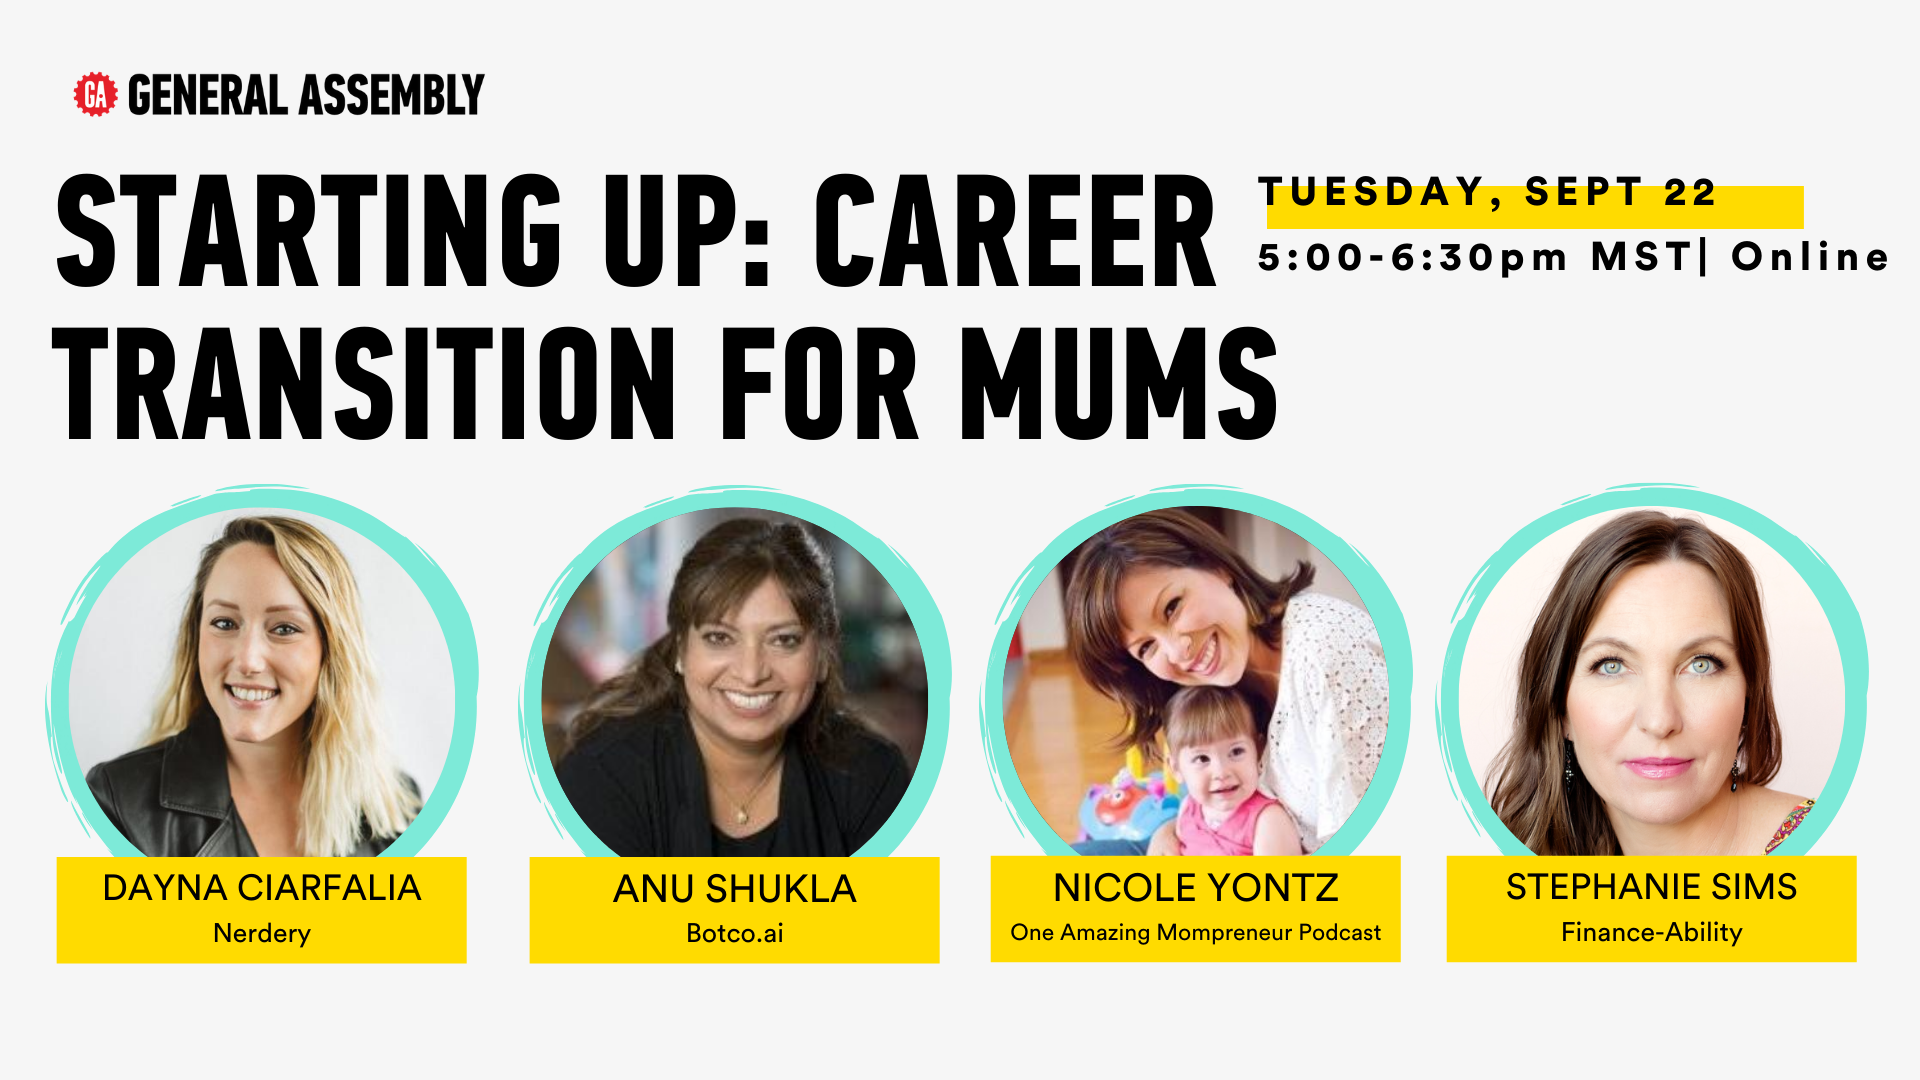 Starting Up: Career Transition for Mums